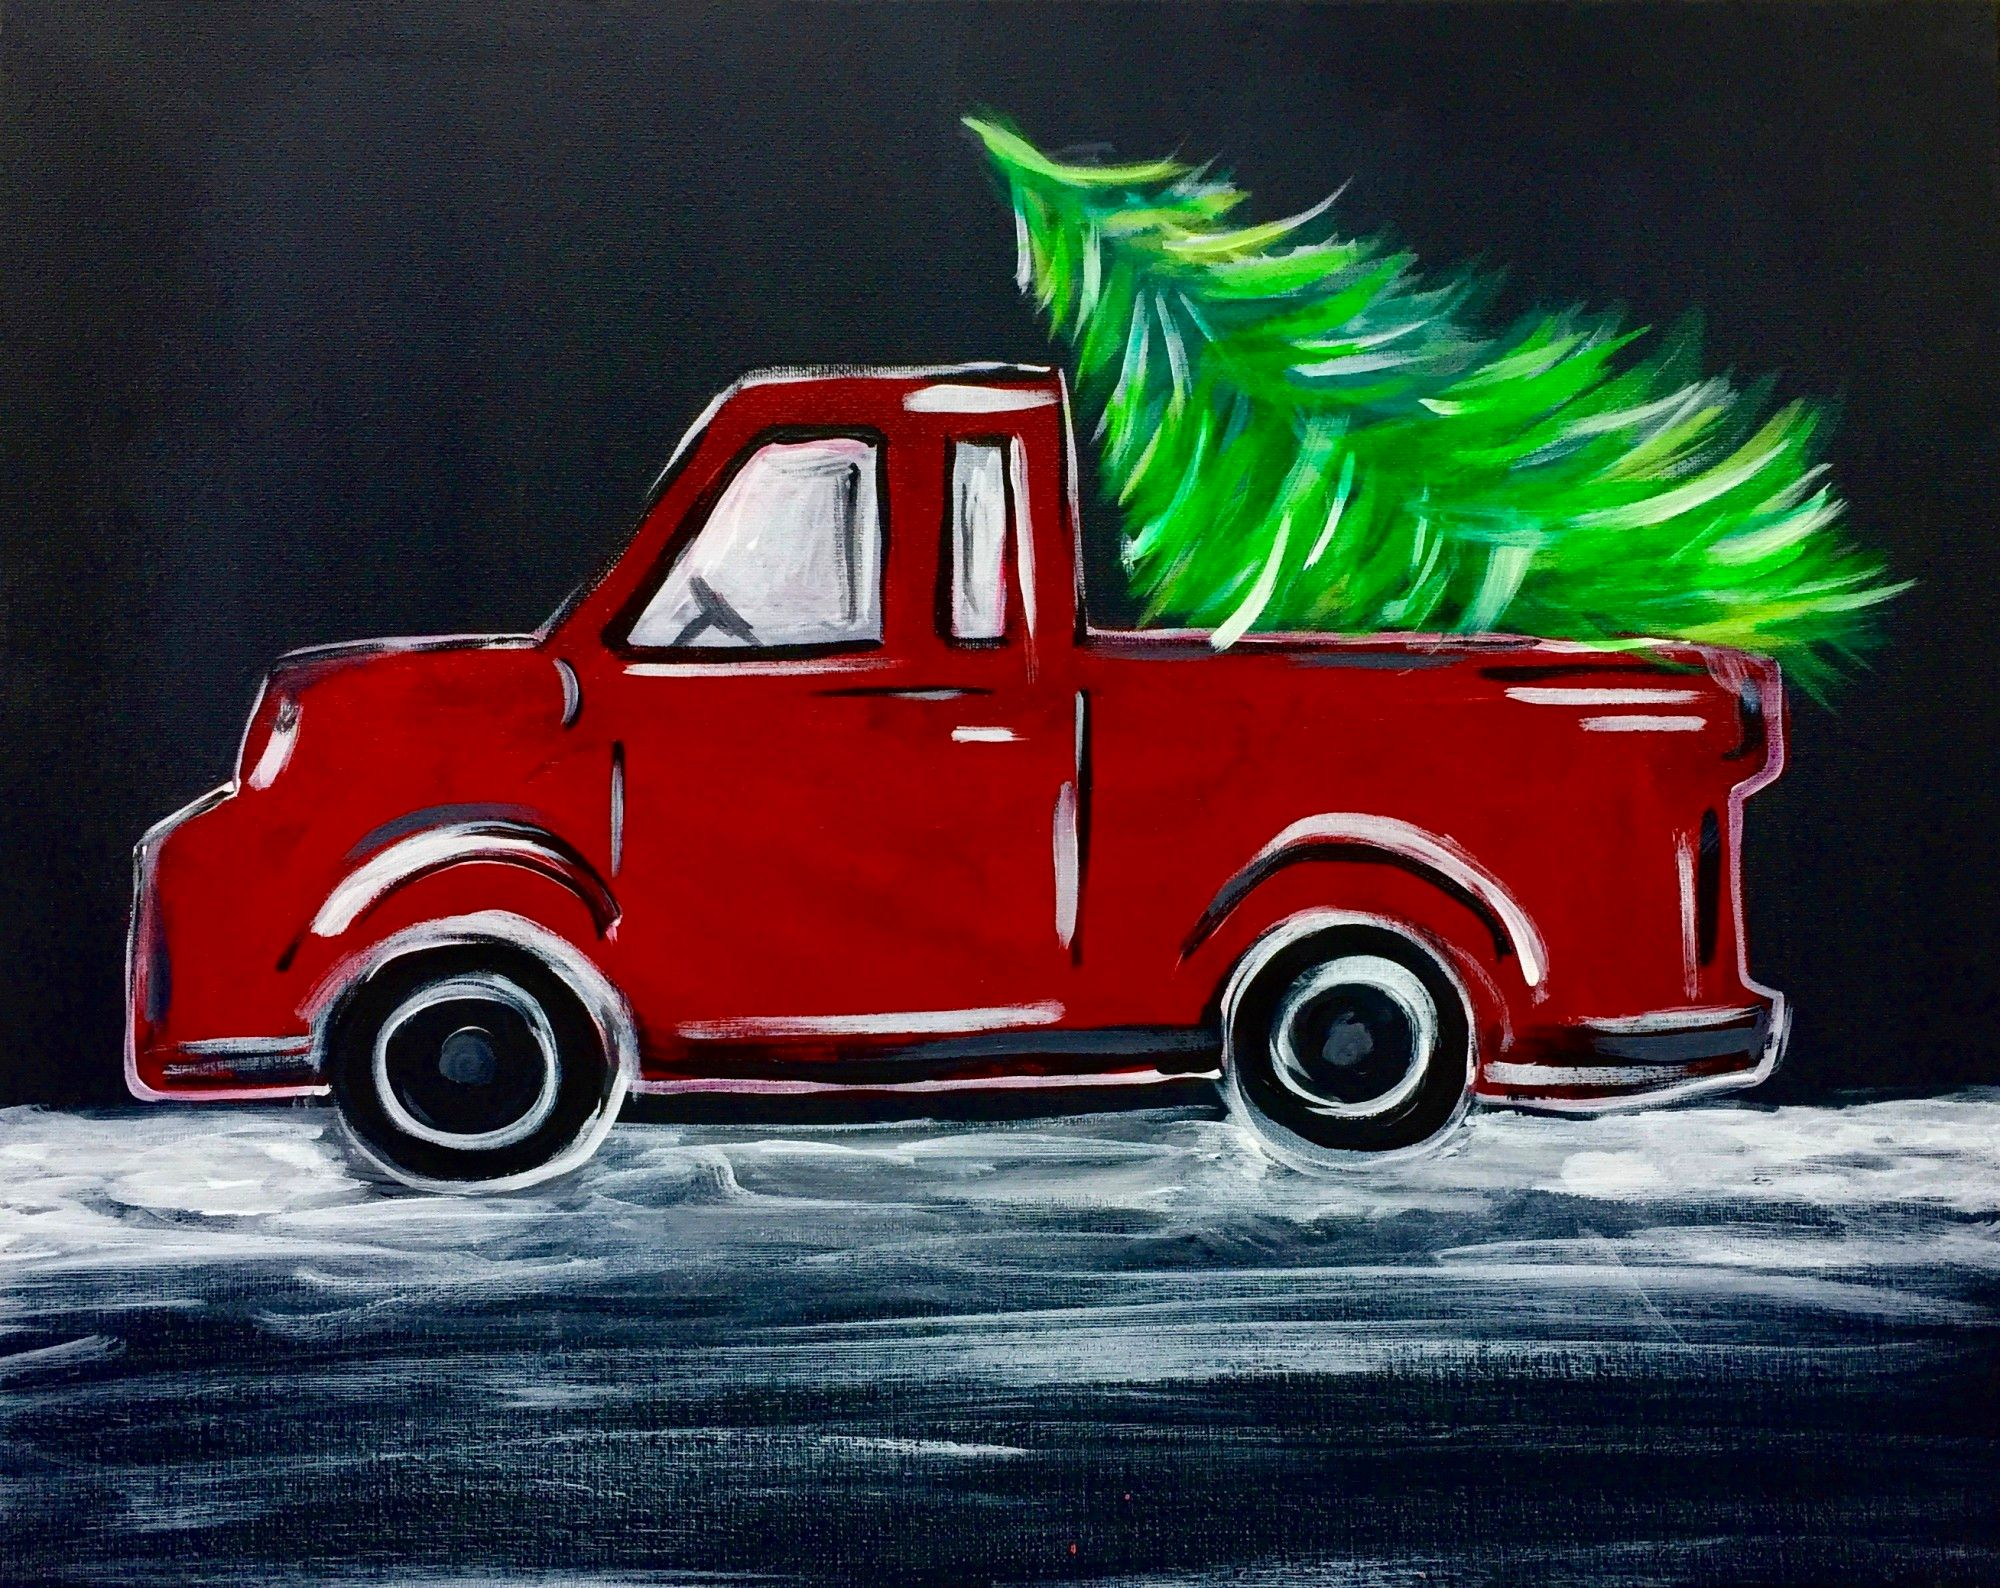 Vintage Truck -  Downtown GR - Wine Down Wednesday $25 Class & 1/2 Bottles of Wine